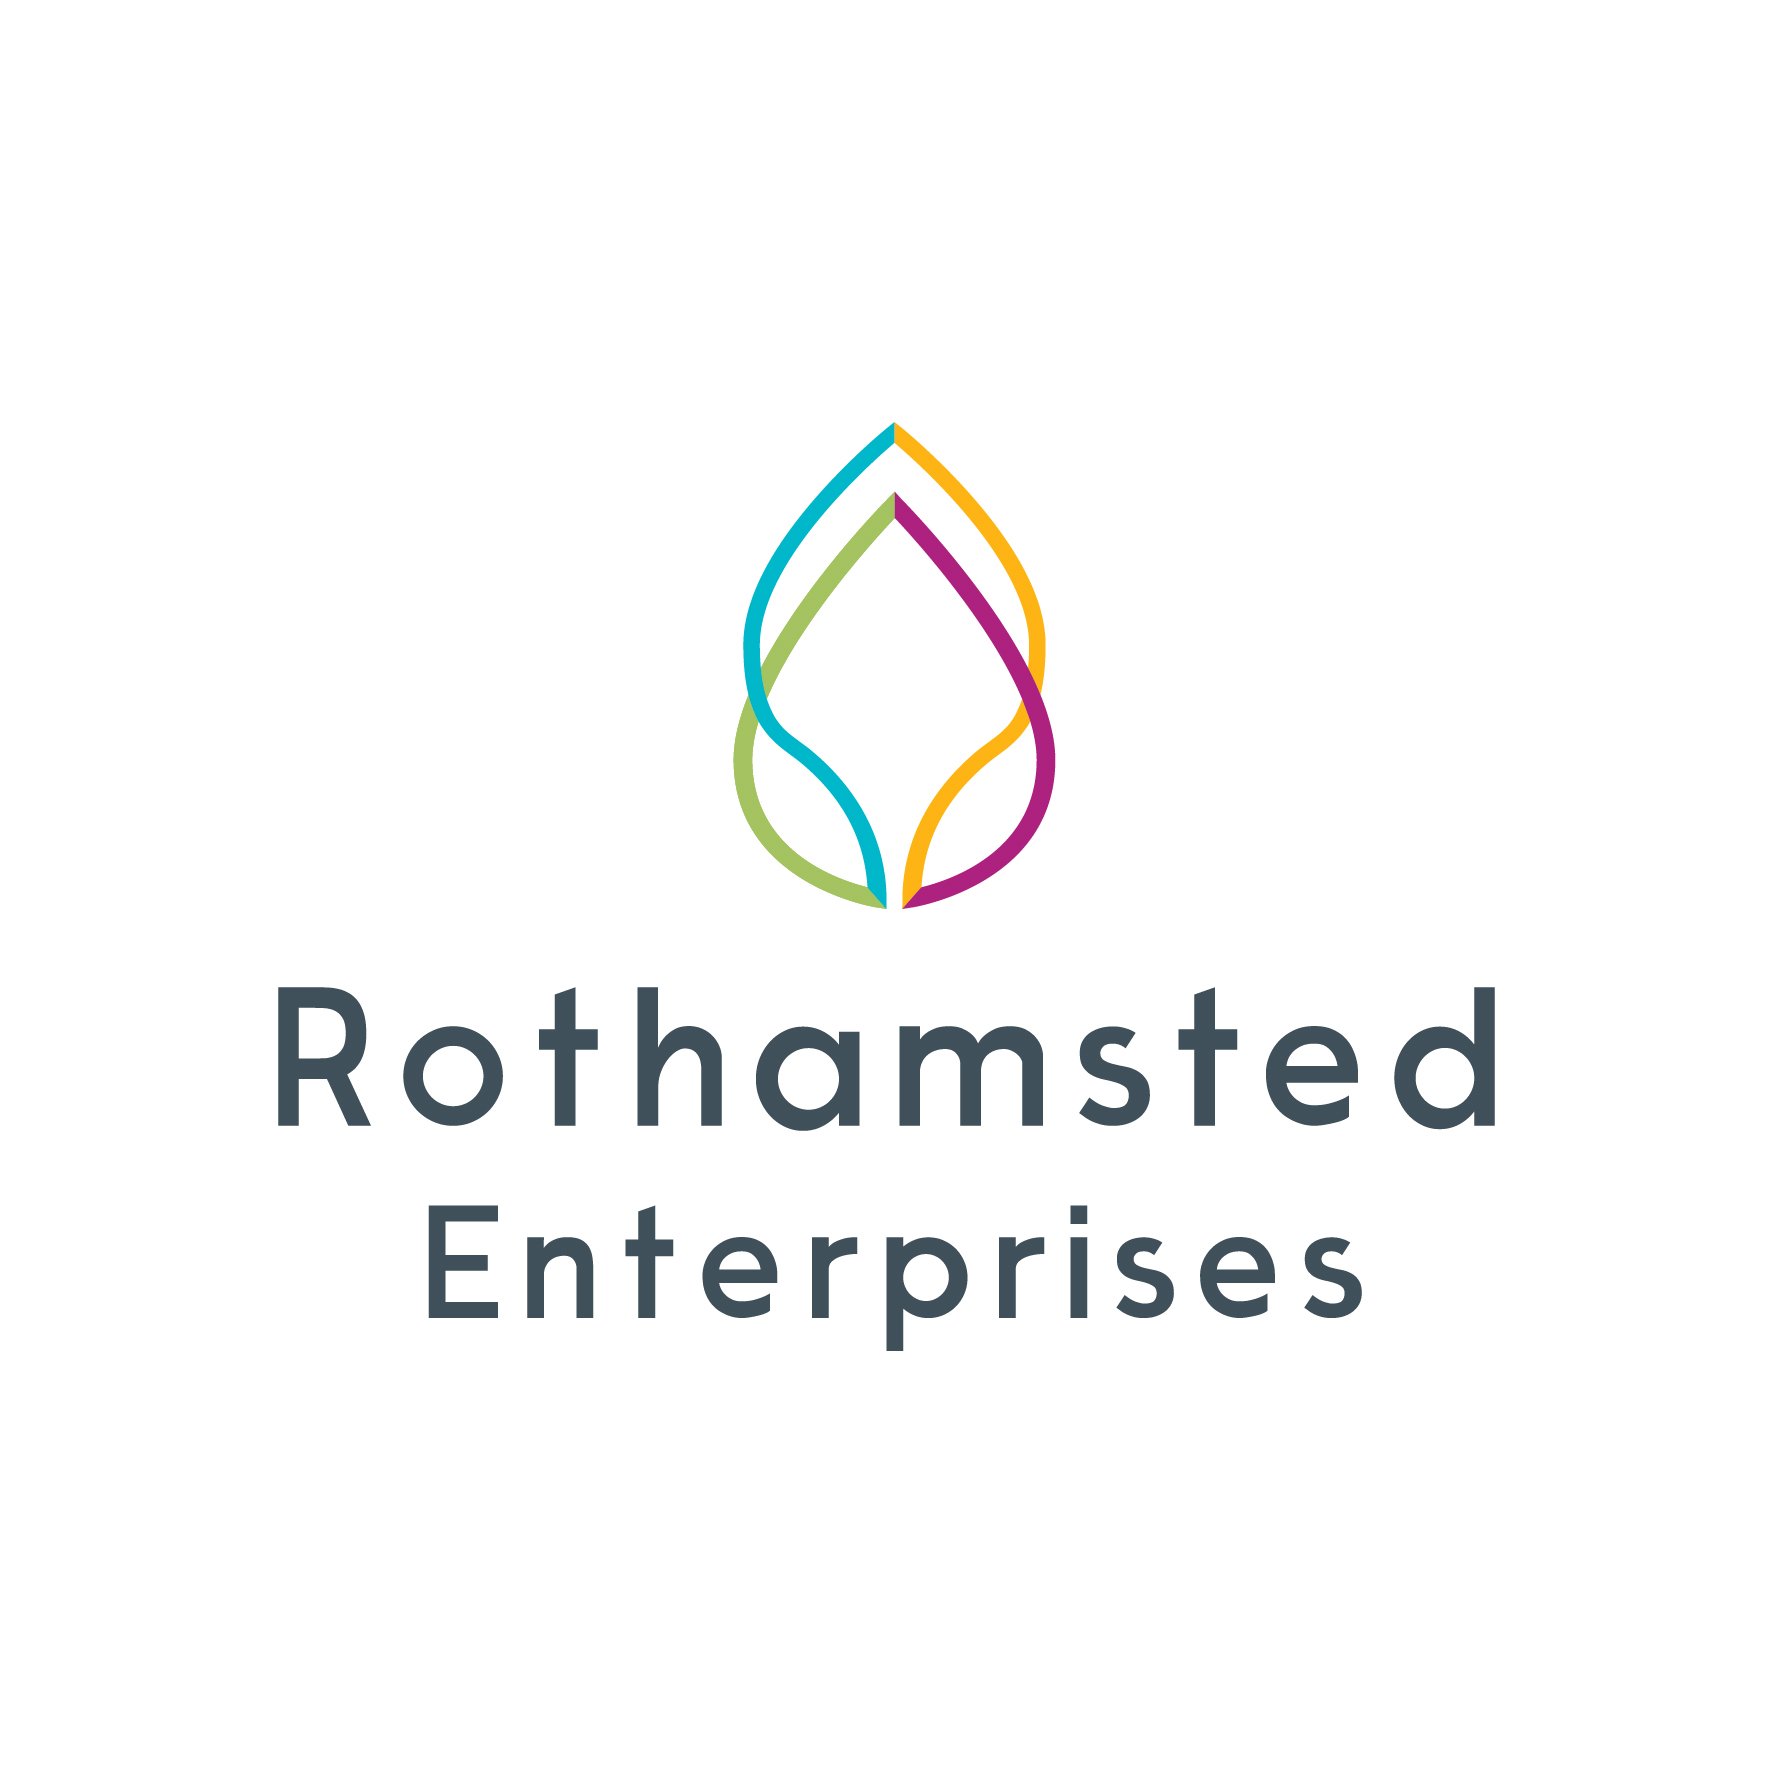 Rothamsted Enterprises logo